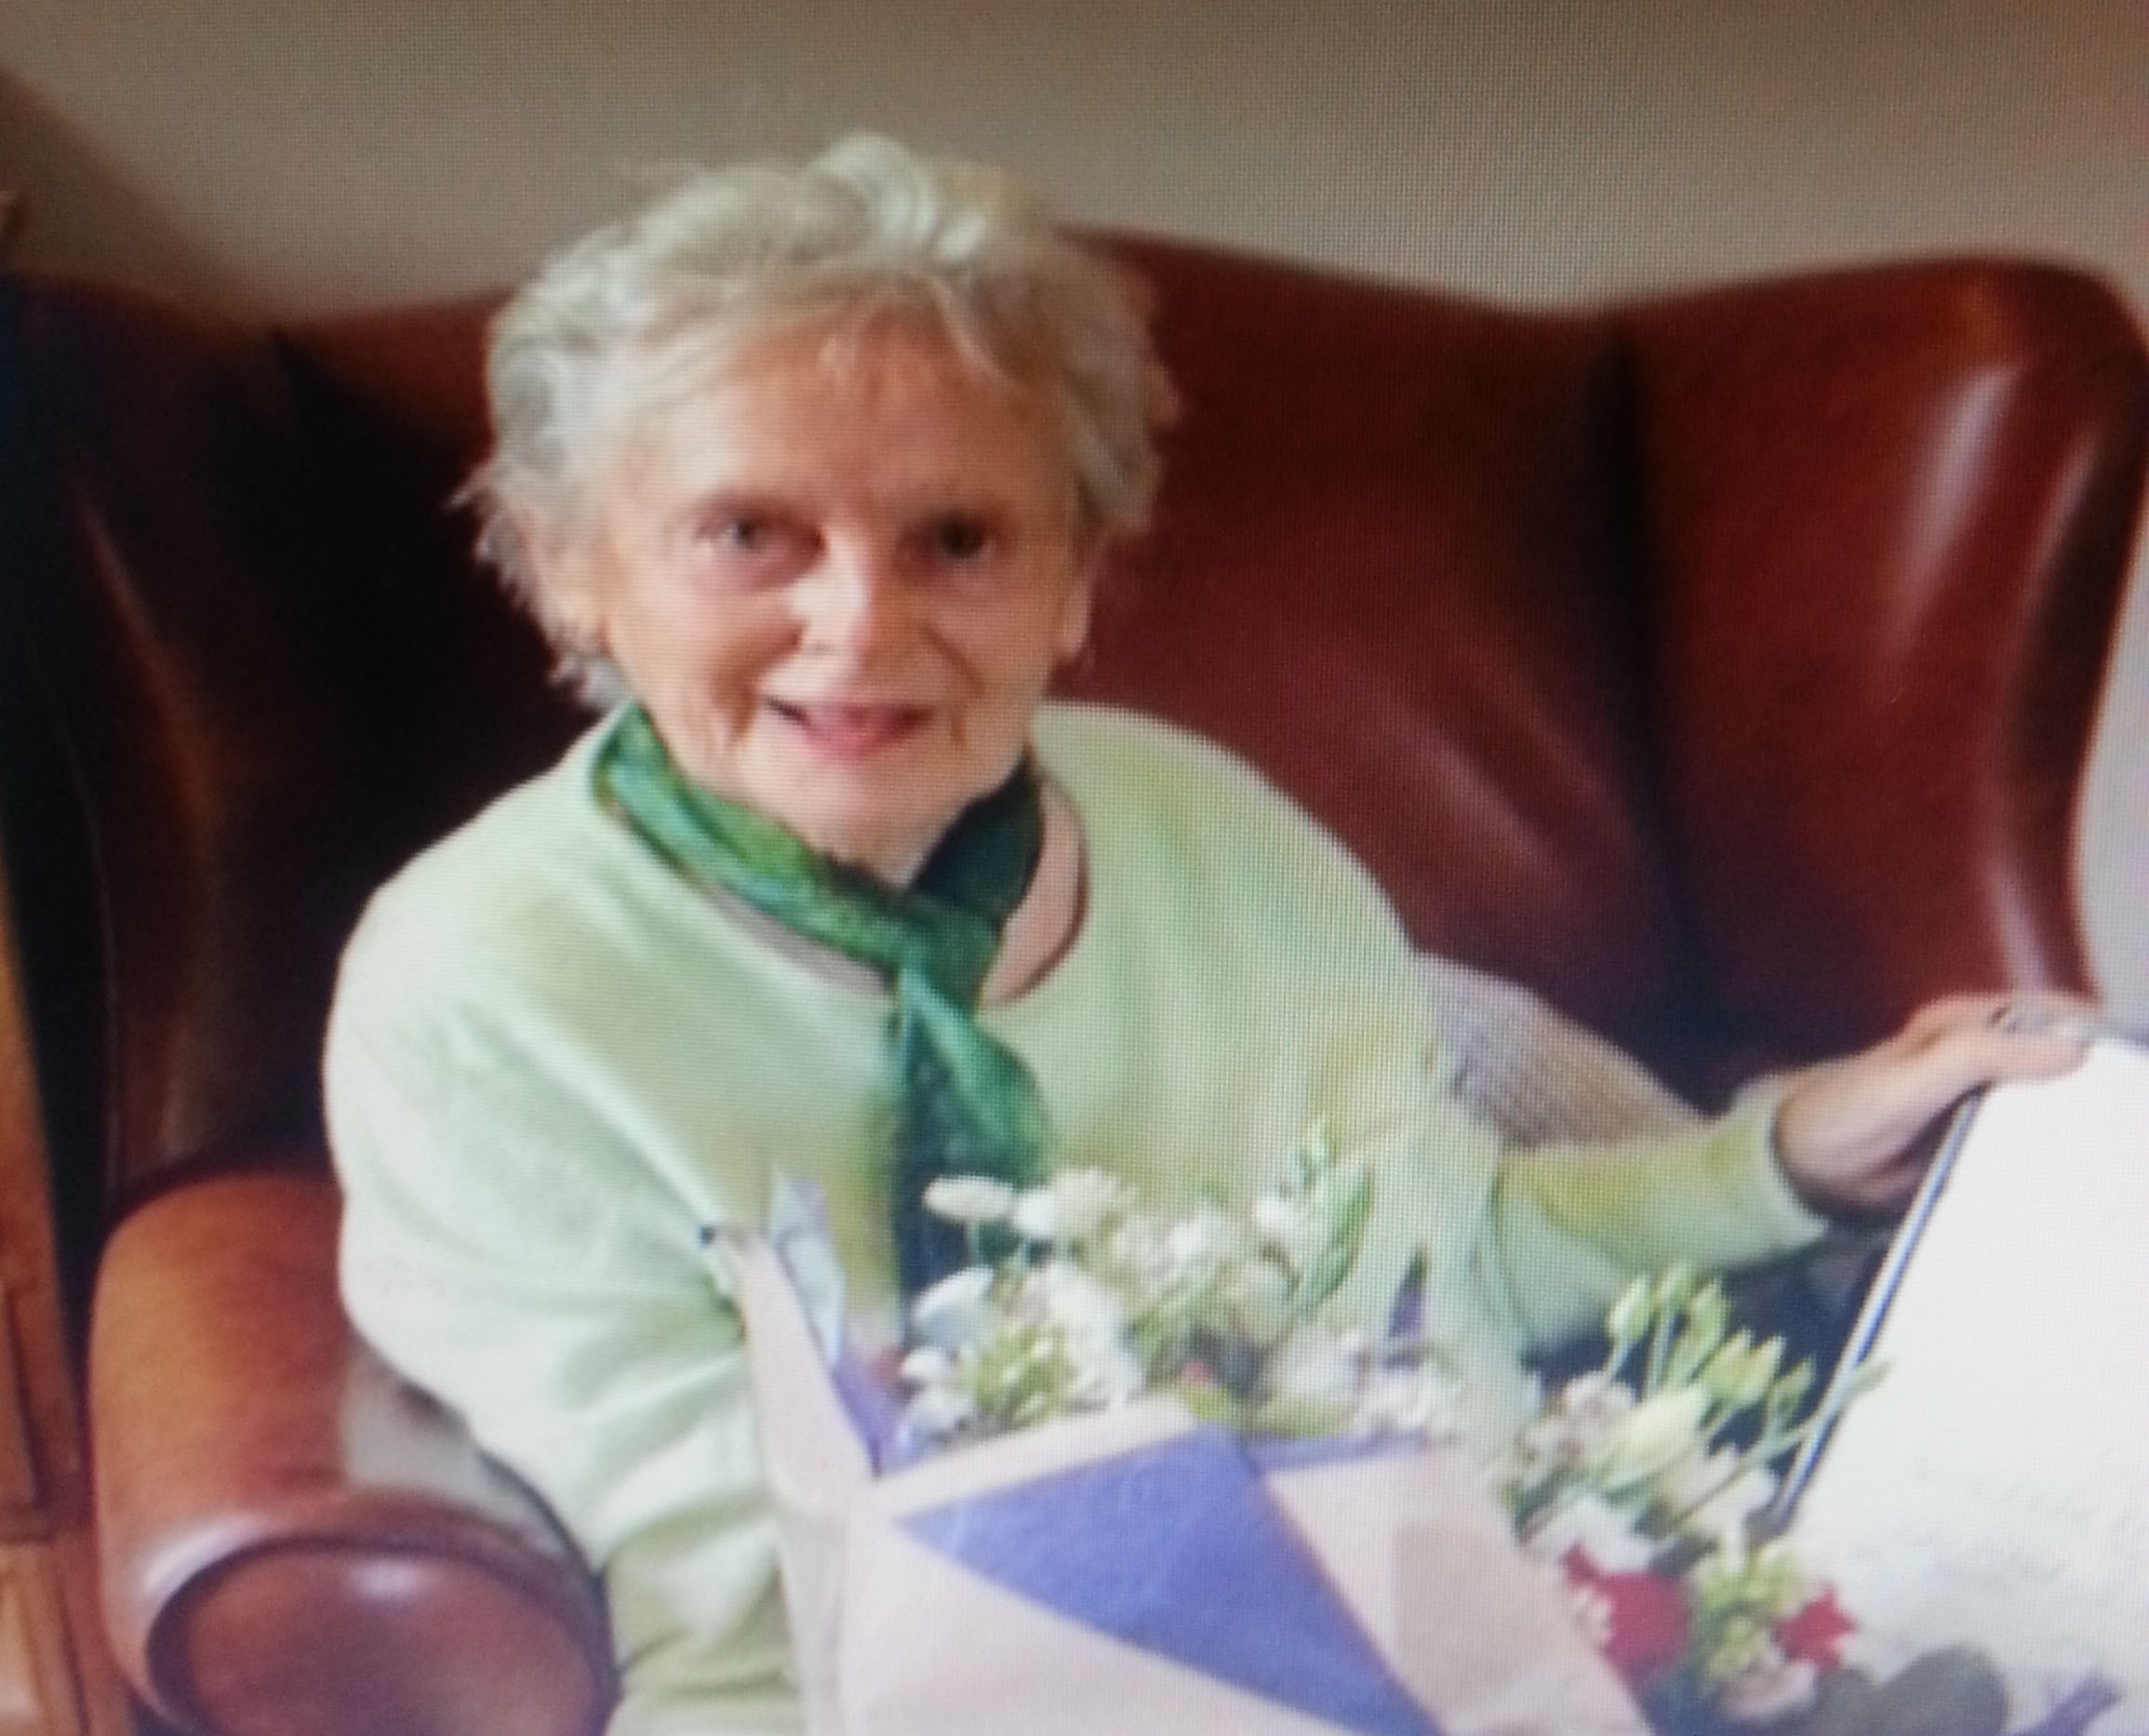 Police search for 91-year-old missing woman from Poole